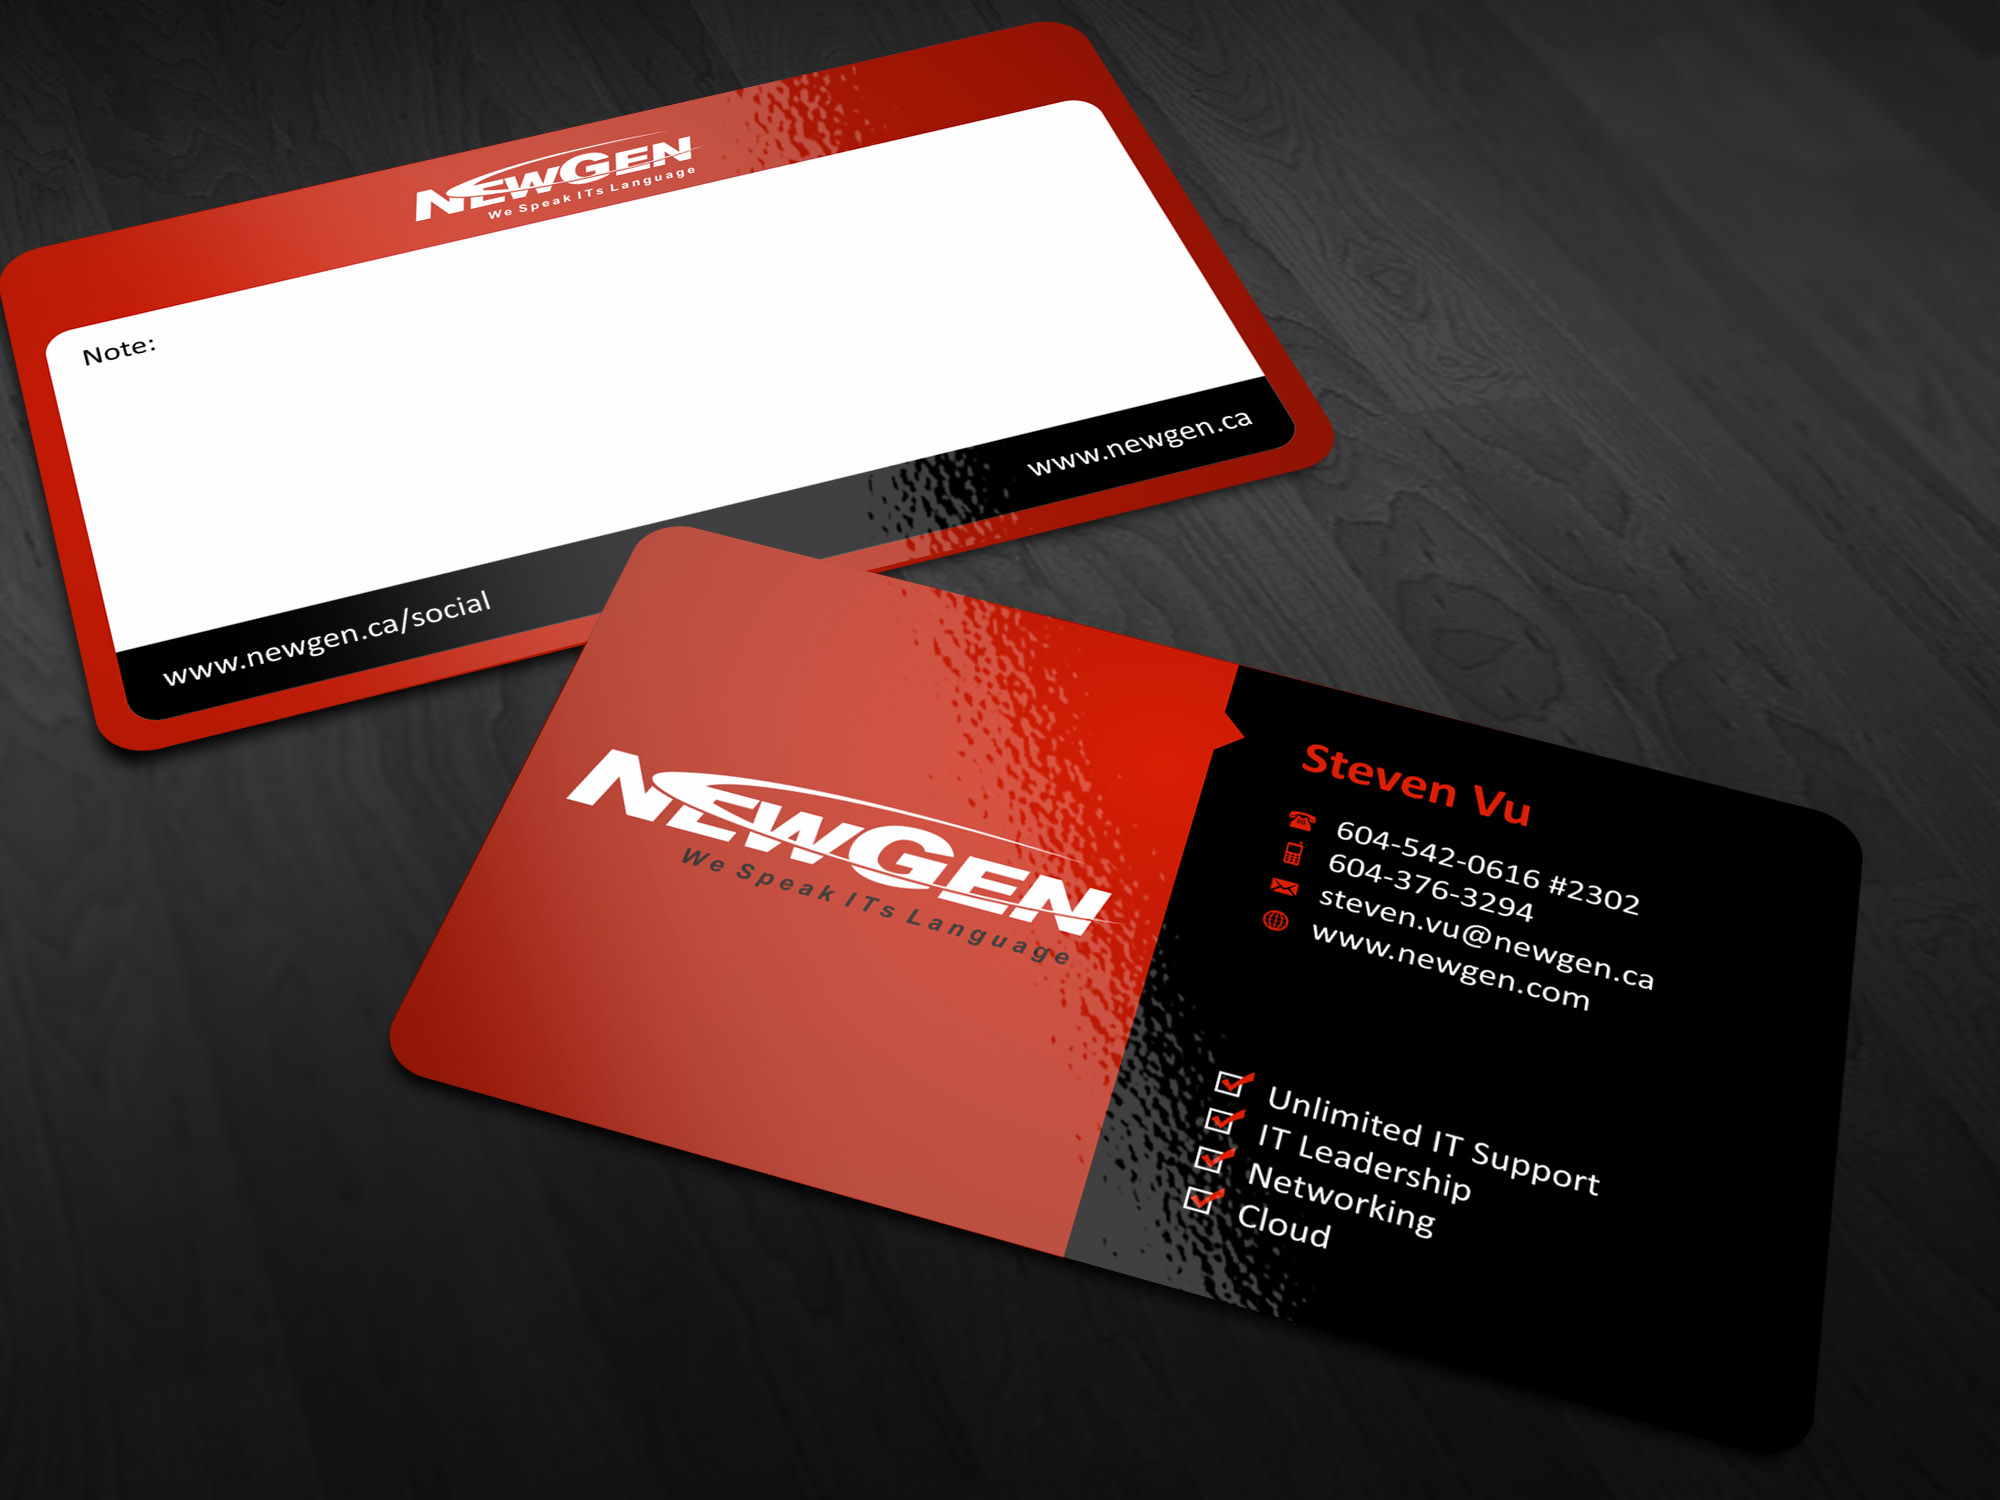 Business card design contests inspiring business card design for business card design by muhammad aslam entry no 62 in the business card design colourmoves